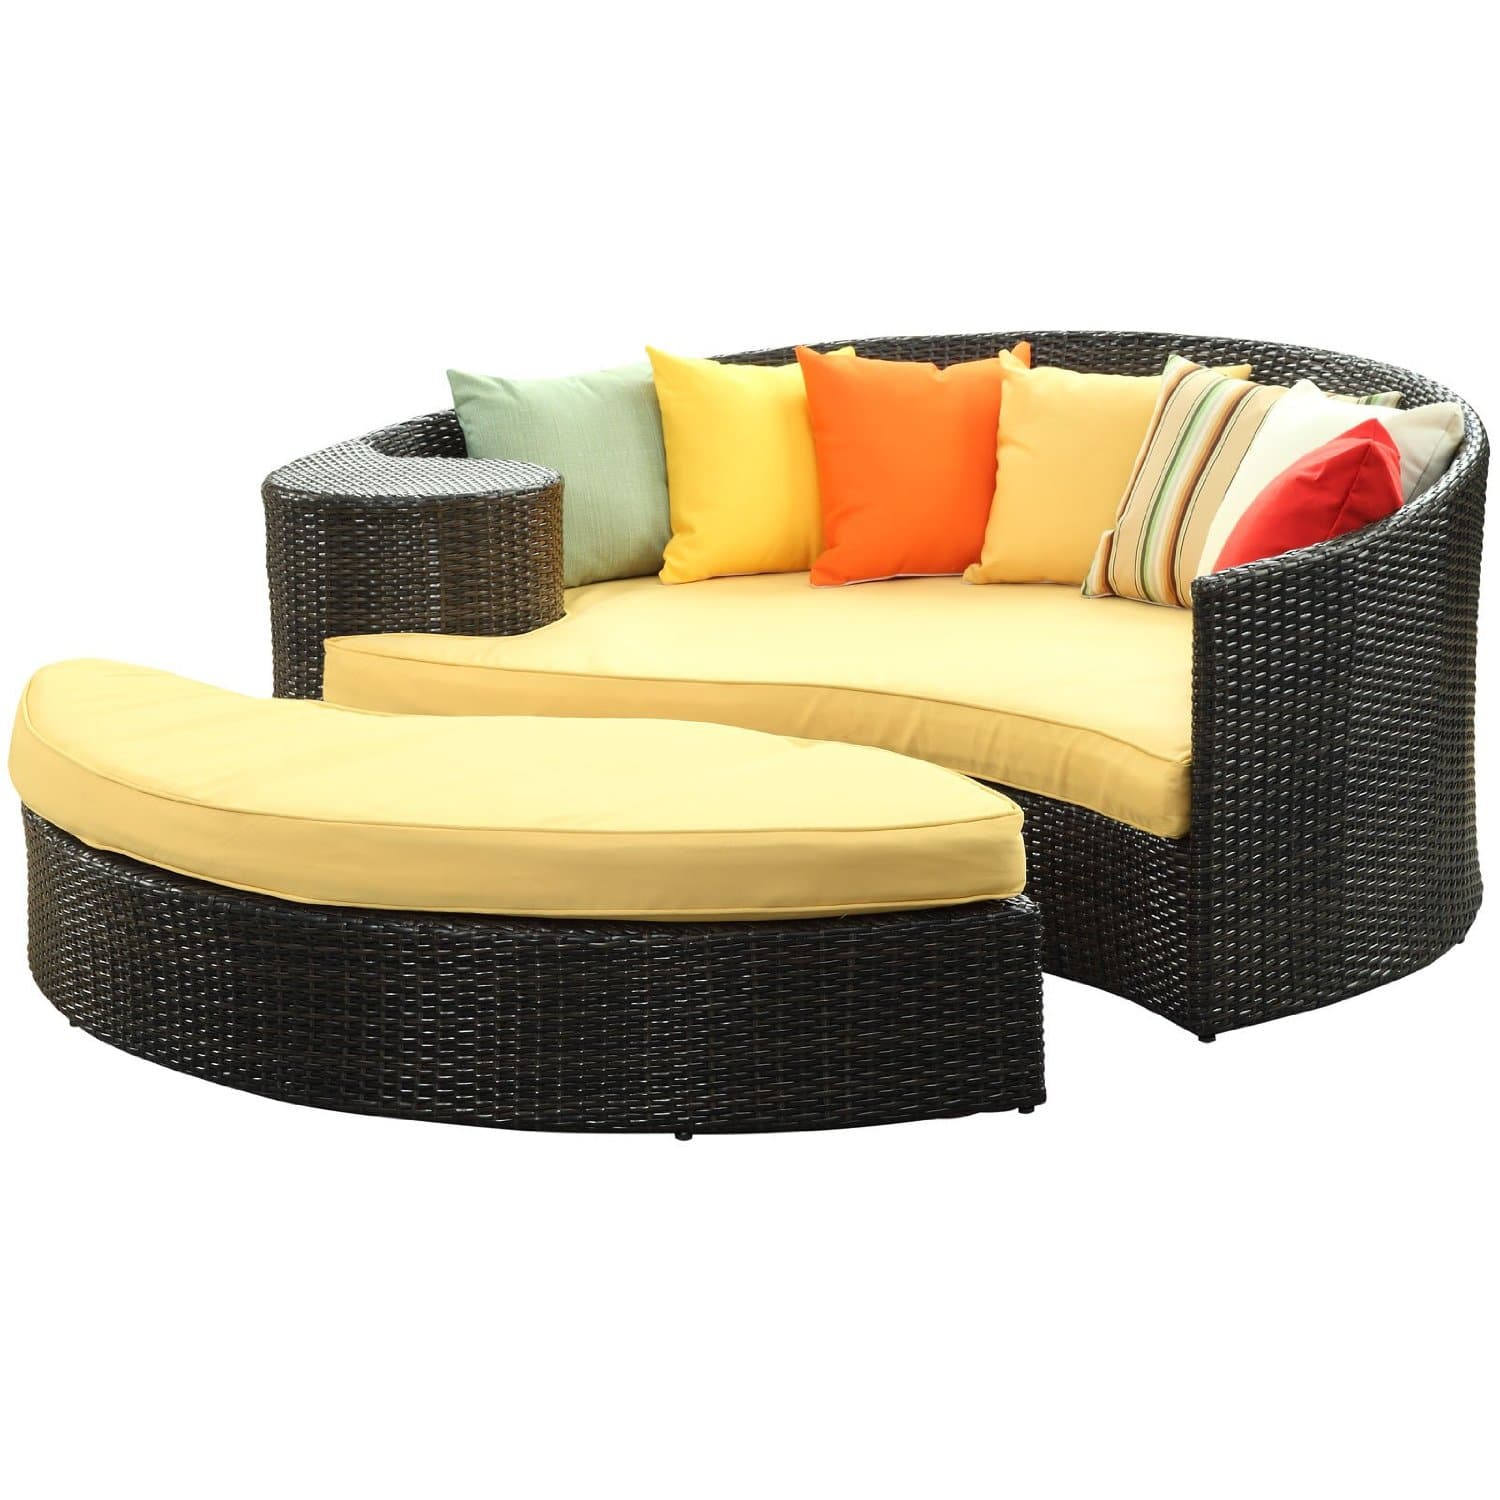 Good LexMod Taiji Outdoor Wicker Patio Daybed with Ottoman in Brown with Orange Cushions This daybed bedding set